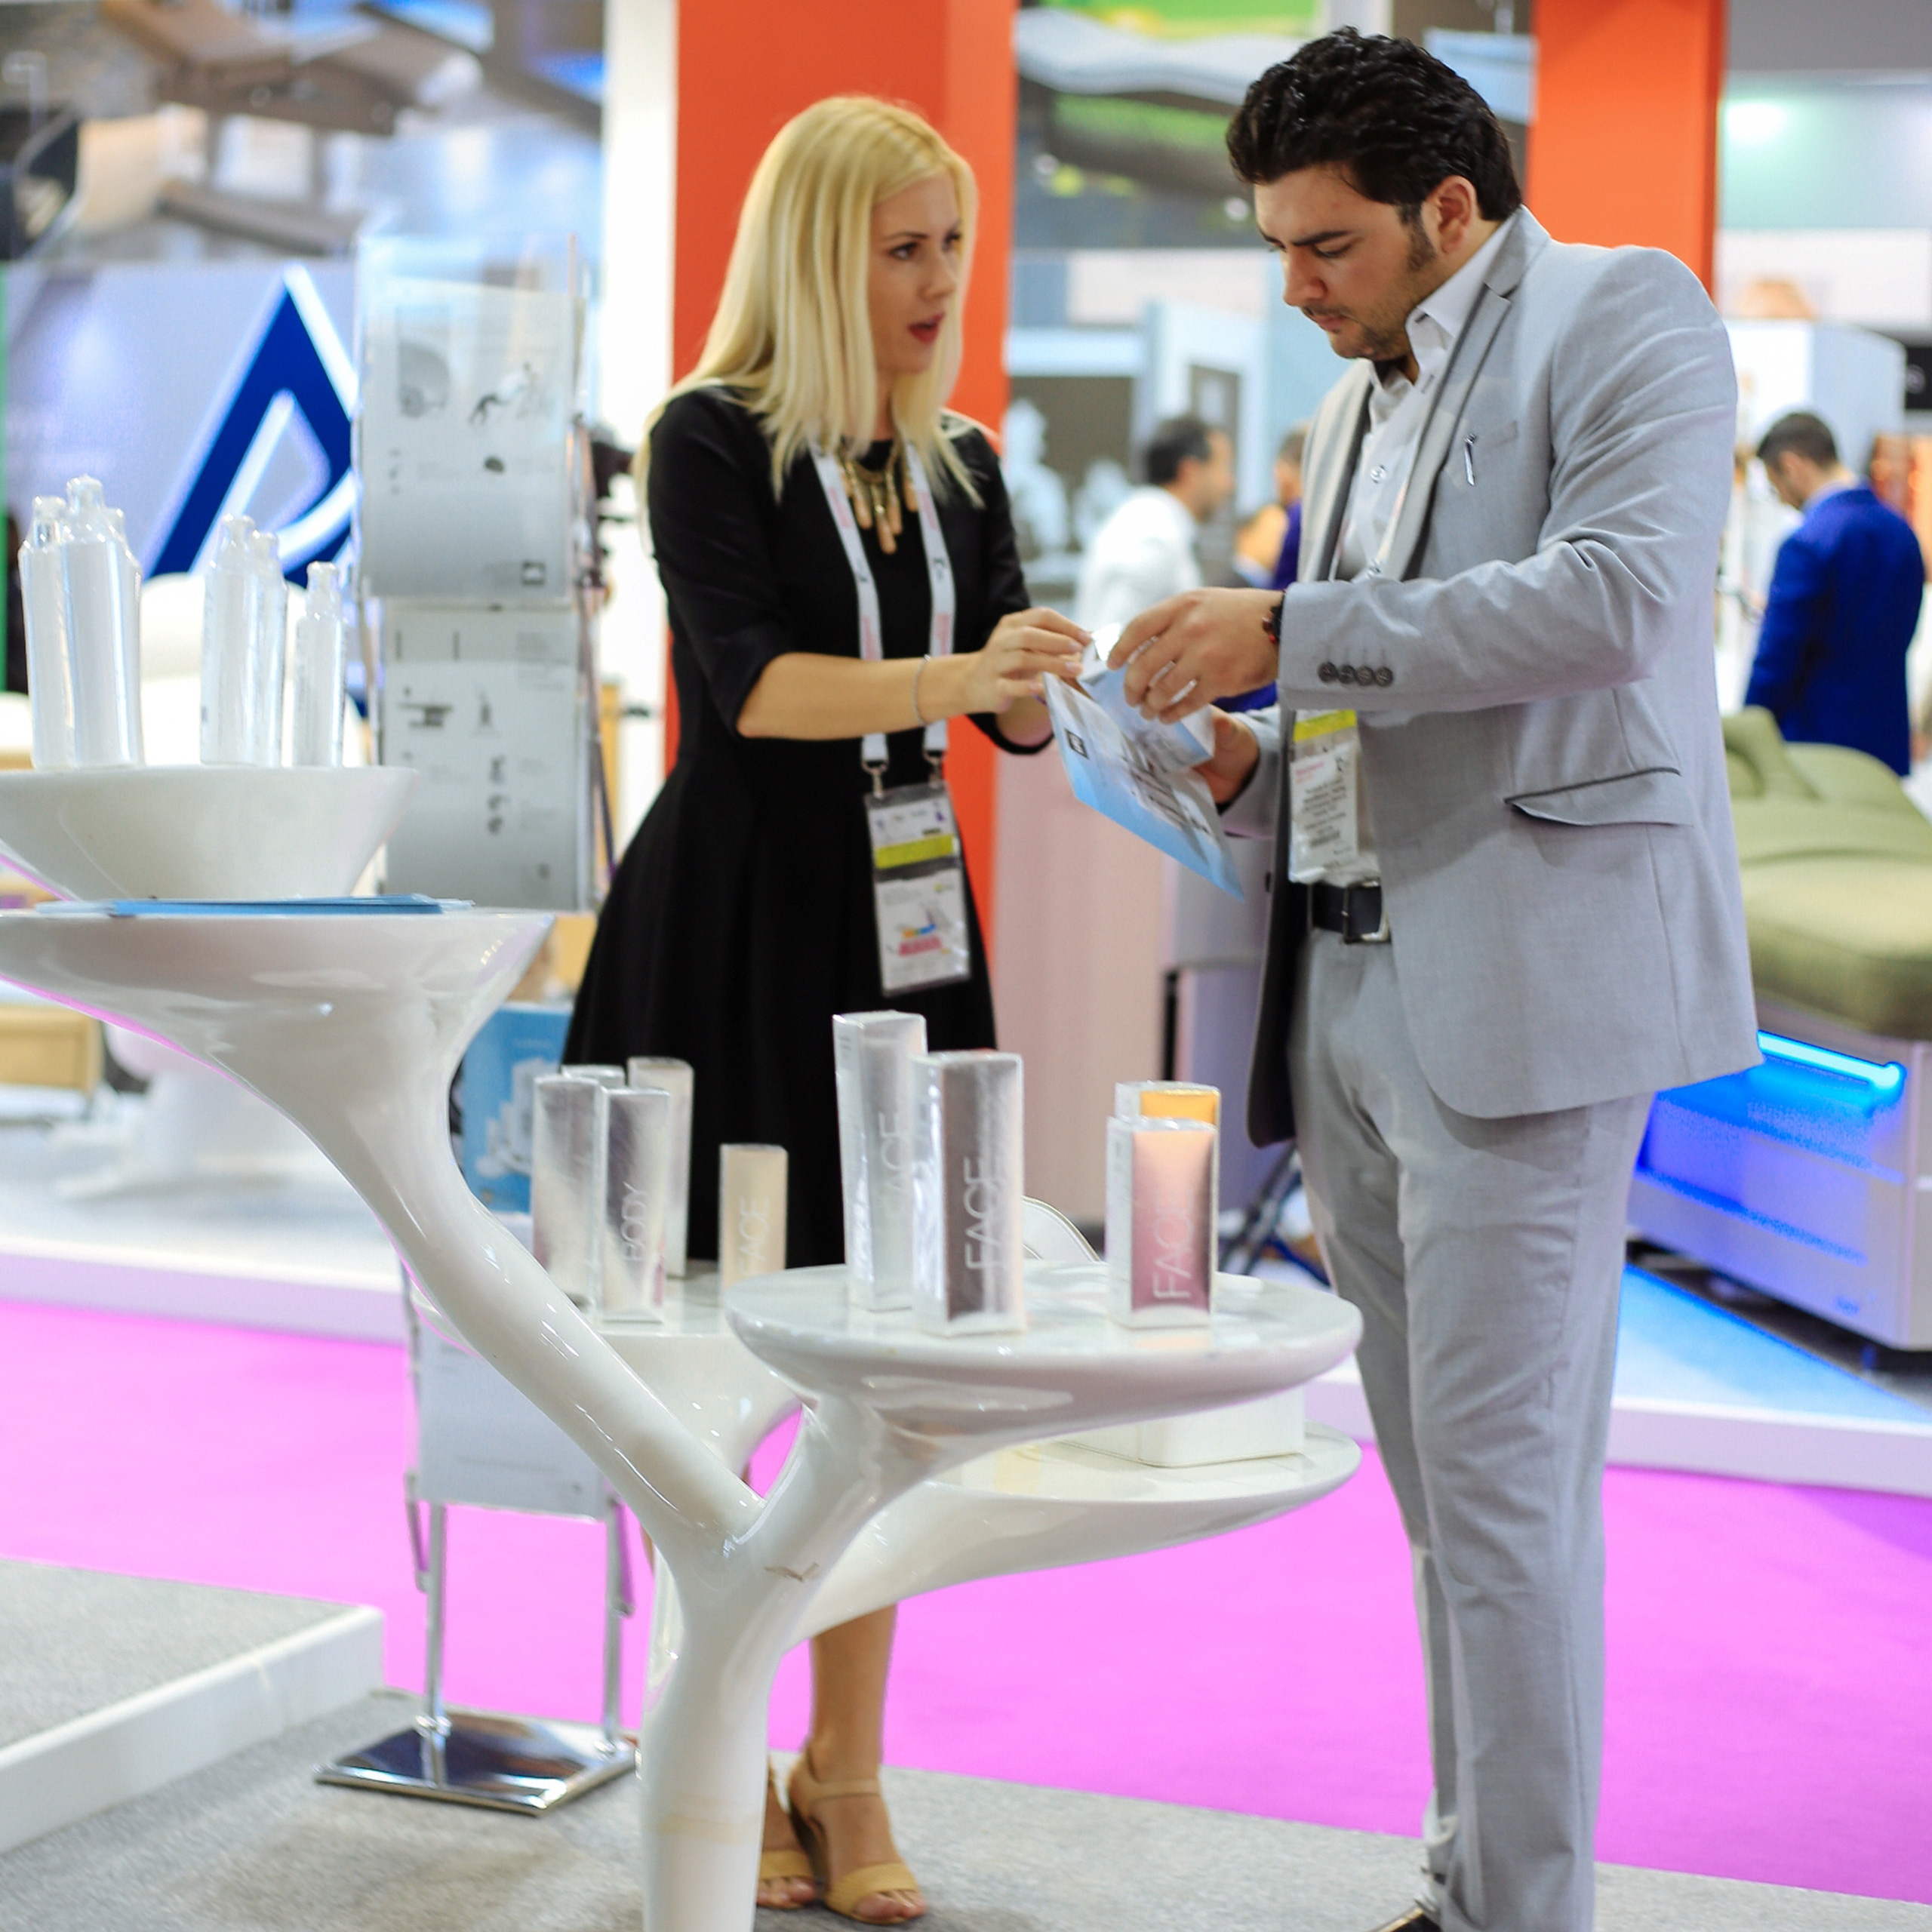 Beautyworld Middle East - Spending on GCC beauty and personal care surges ahead, estimated at US$9.3 billion in 2016 – Euromonitor